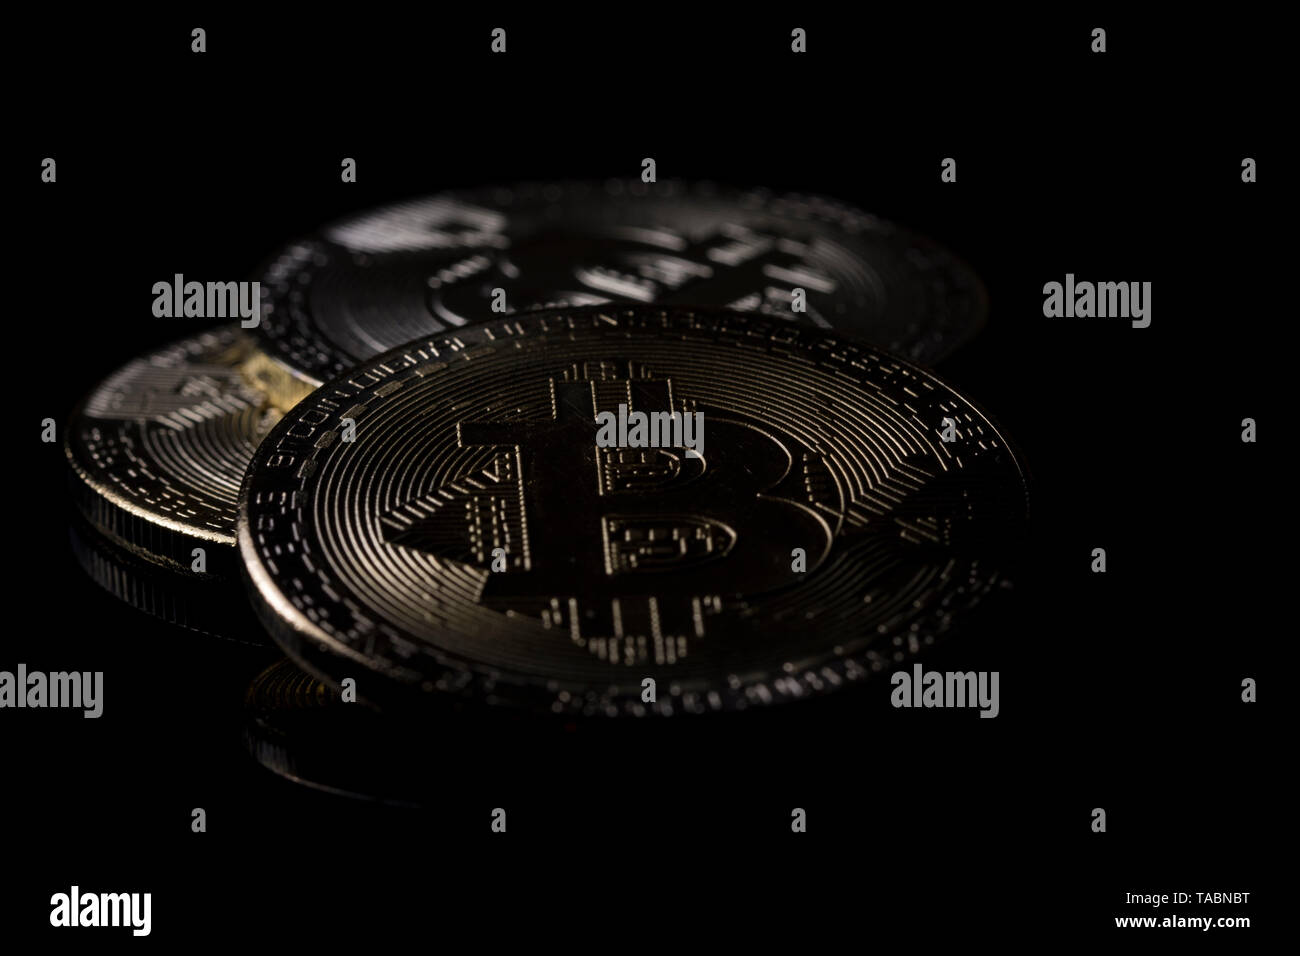 Panoramic view bitcoin close up isolated on black background digital coins. Buying, trading and selling cryptocurrencies. Digital money financial - Stock Image